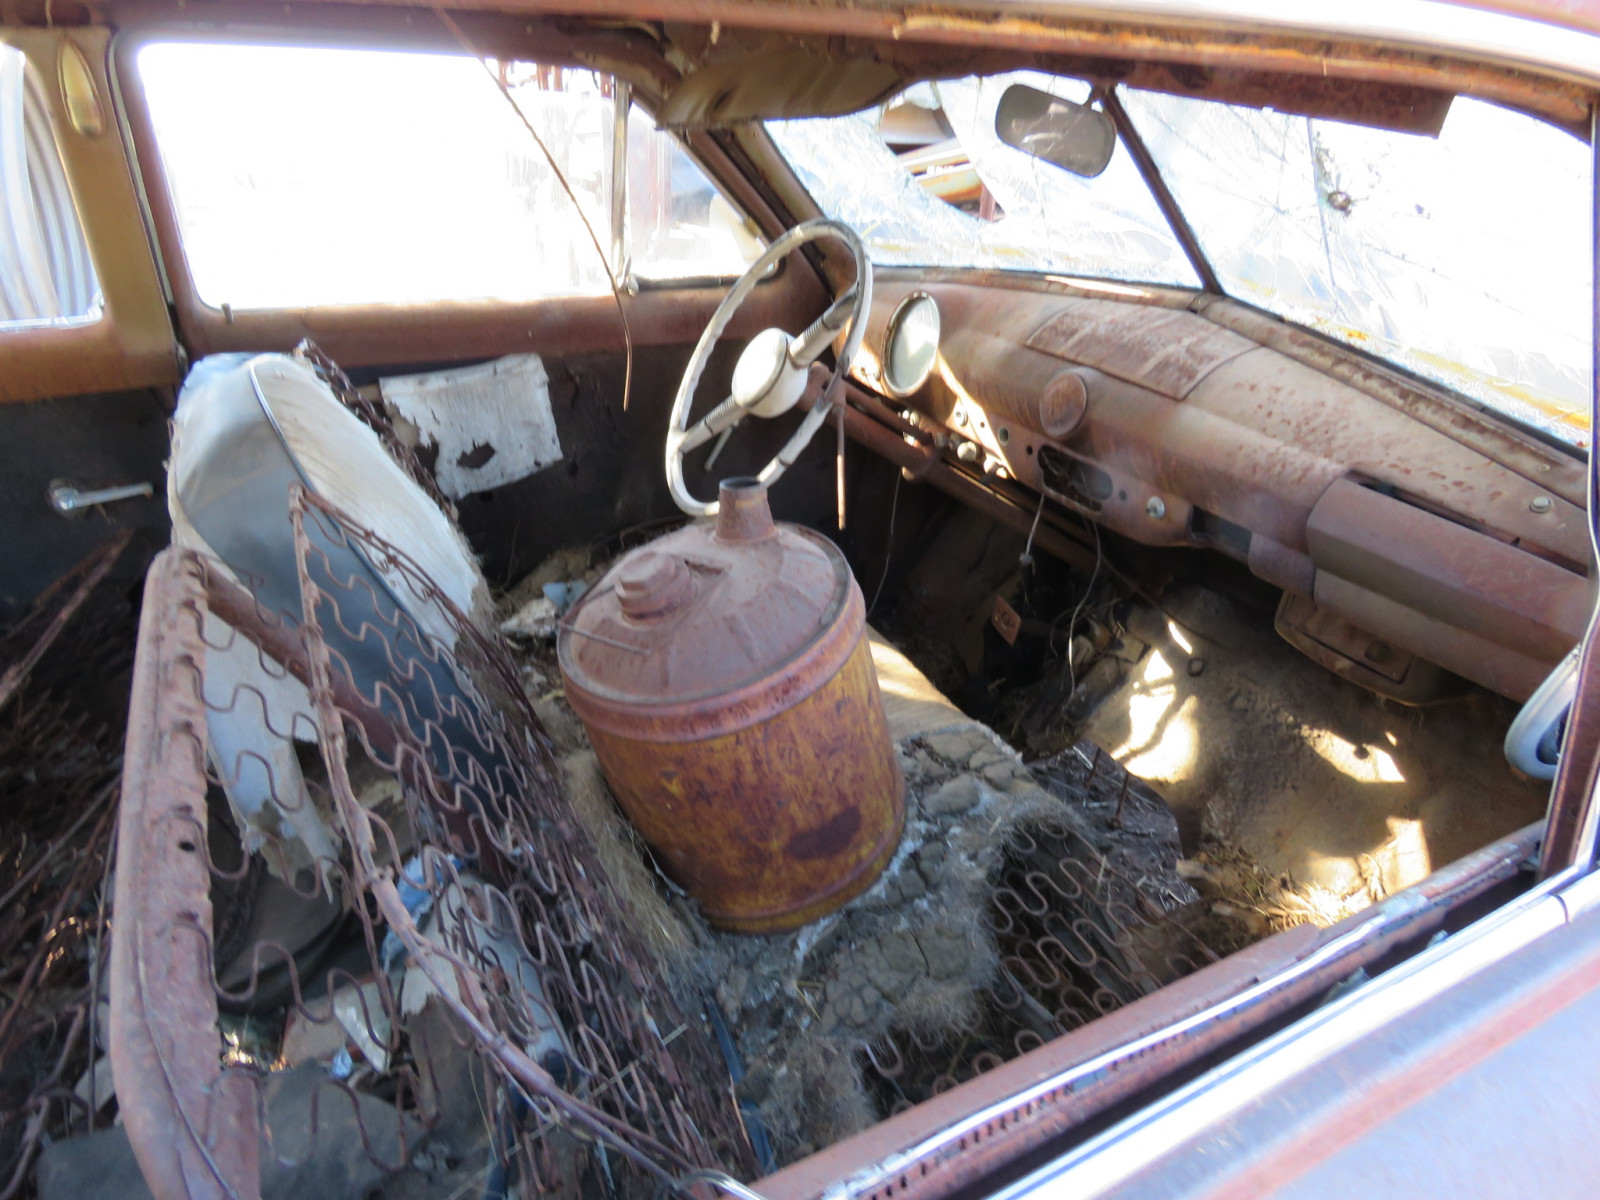 1949/50 Ford 2dr Sedan for parts - Image 4